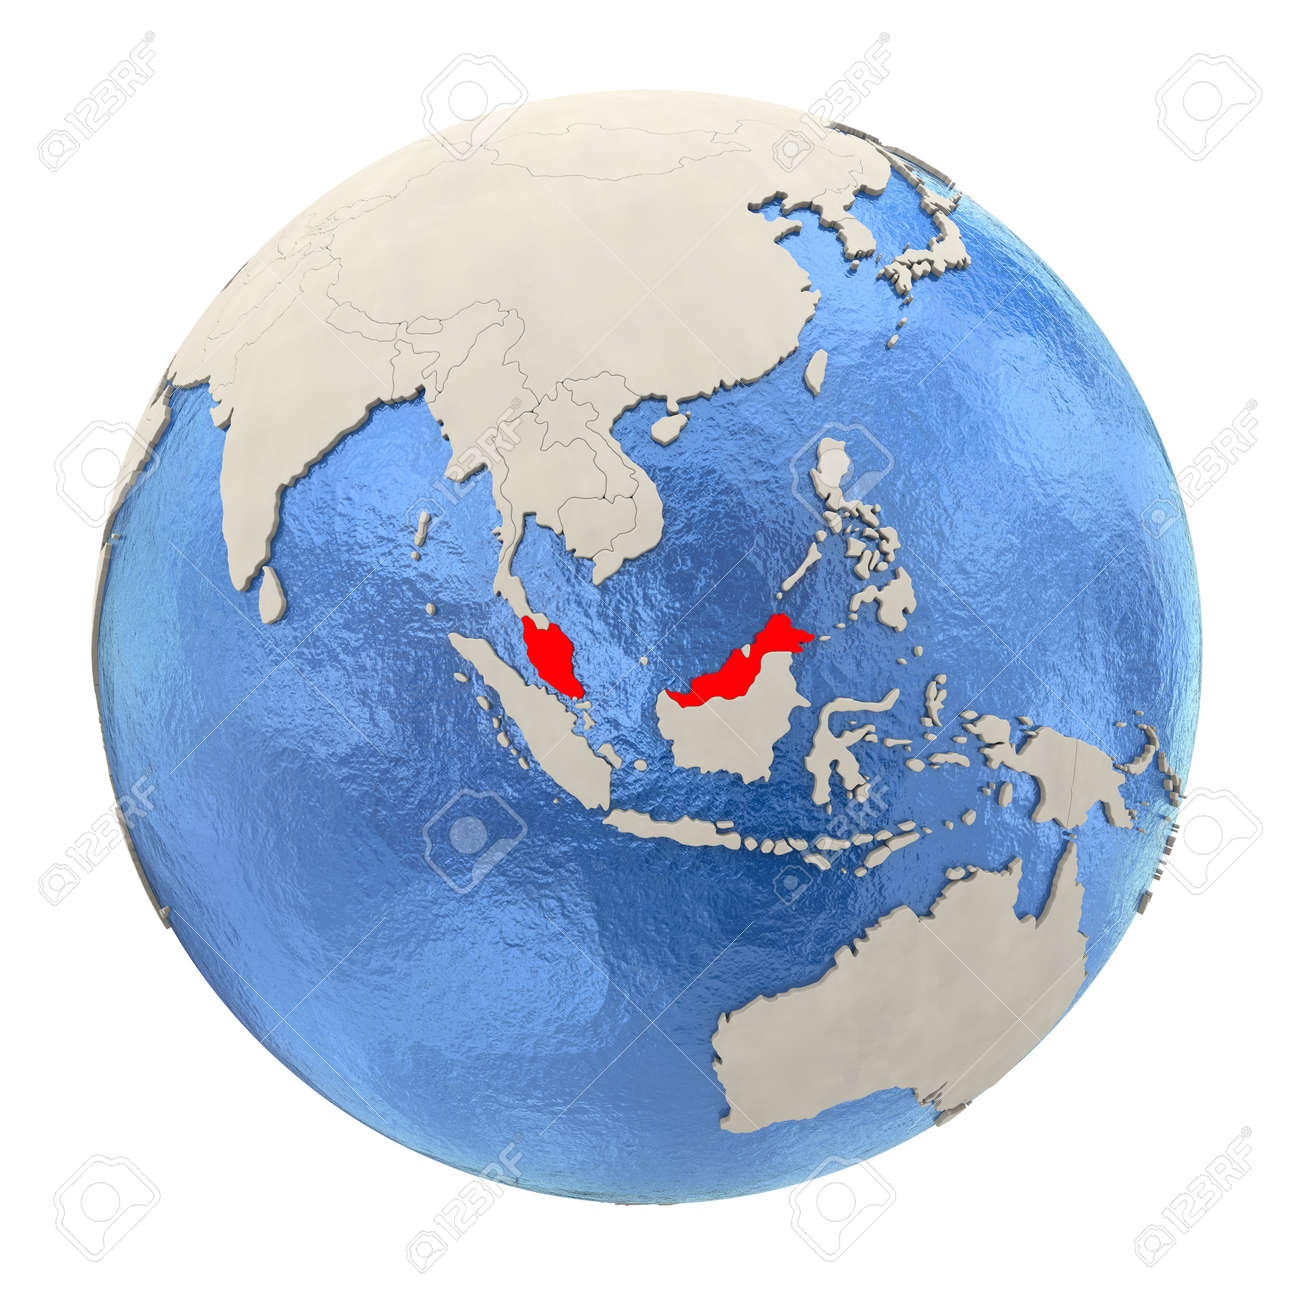 map of malaysia on political globe with watery oceans and embossed